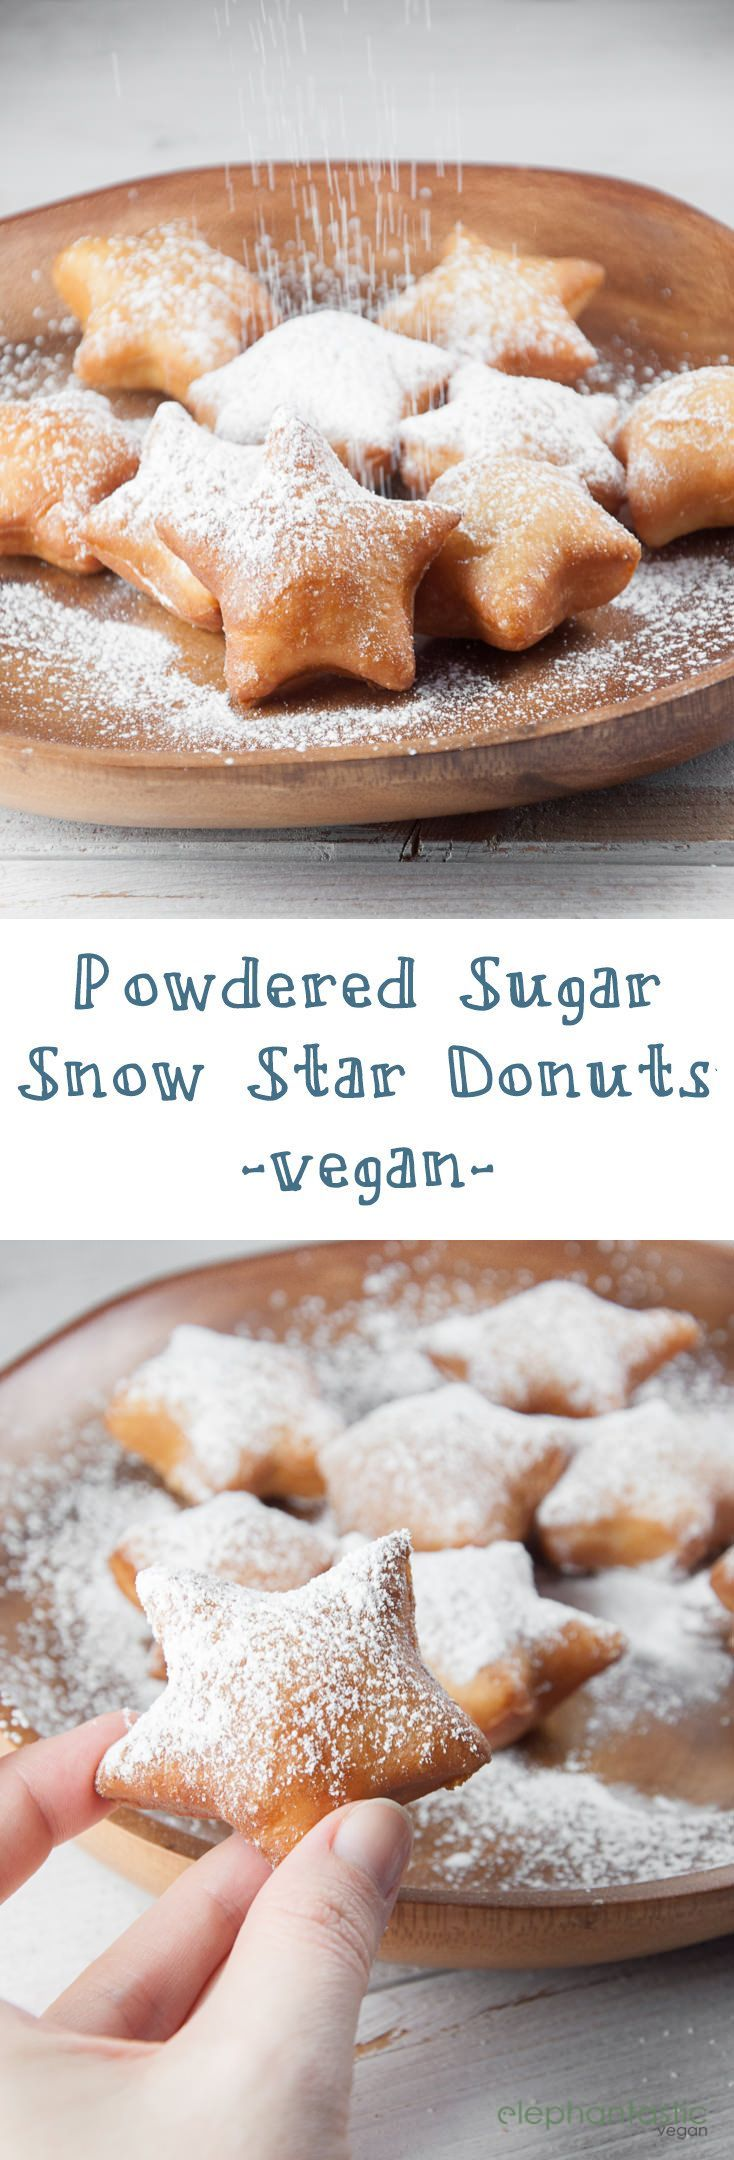 These vegan Snow Star Donuts dusted with powdered sugar are the perfect treat for the holidays! Fluffy inside, crisp outside. Absolutely delicious!